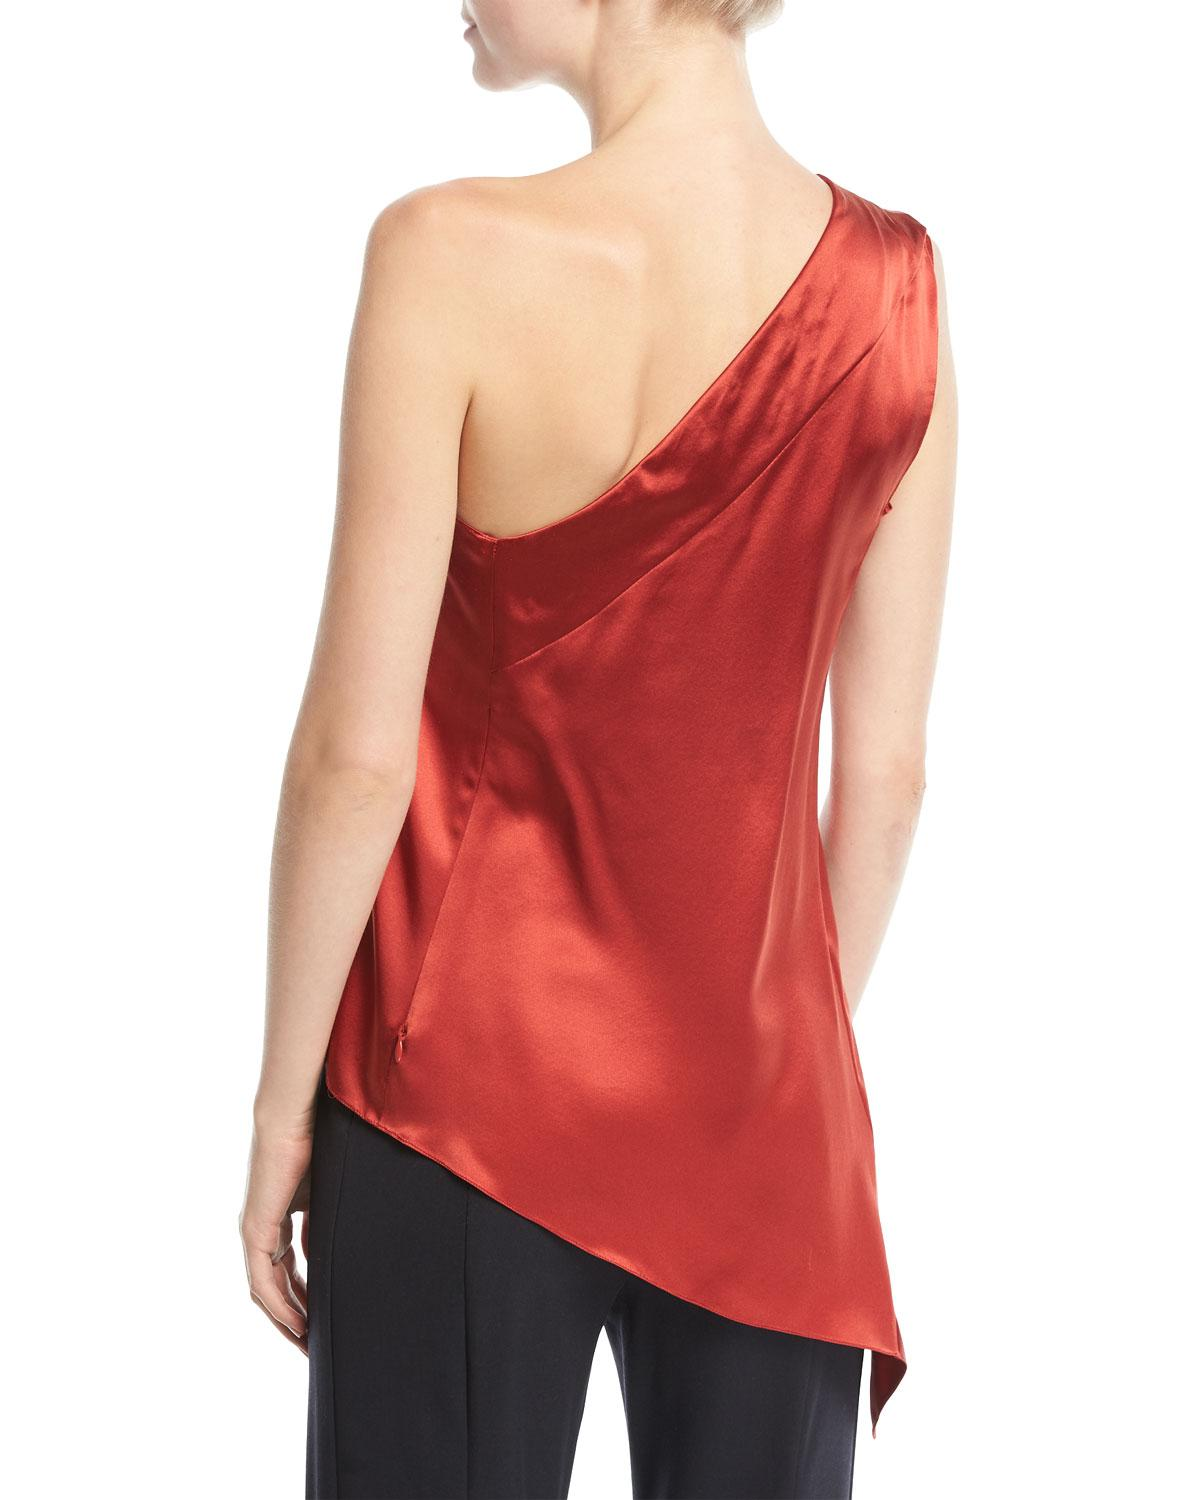 83e698a1d1b29 Lyst - Narciso Rodriguez One-shoulder Handkerchief-hem Silk Top in Red -  Save 71%